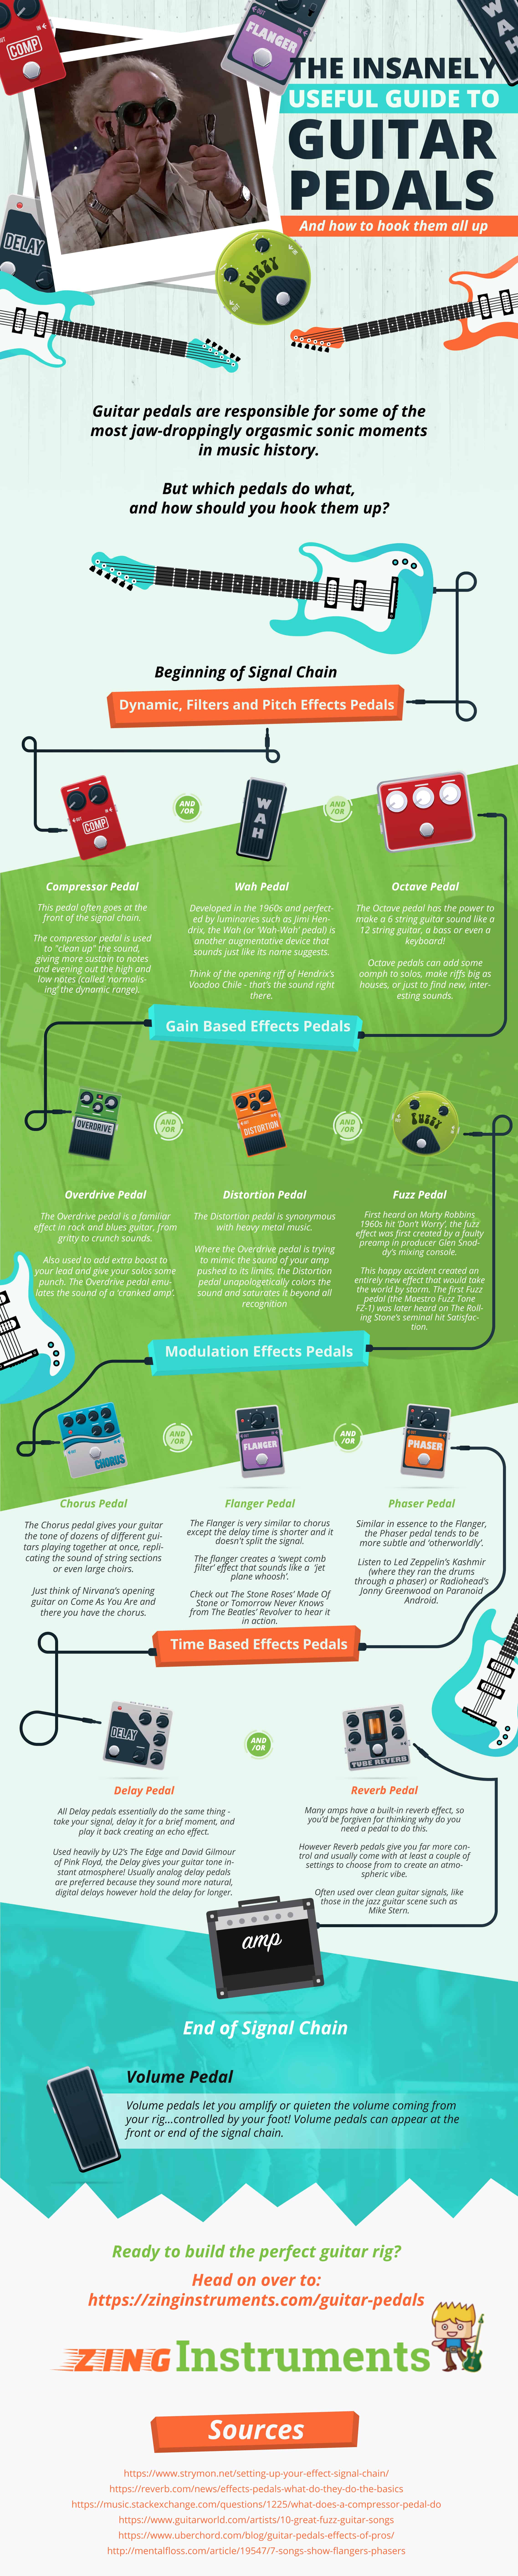 guitar pedal infographic